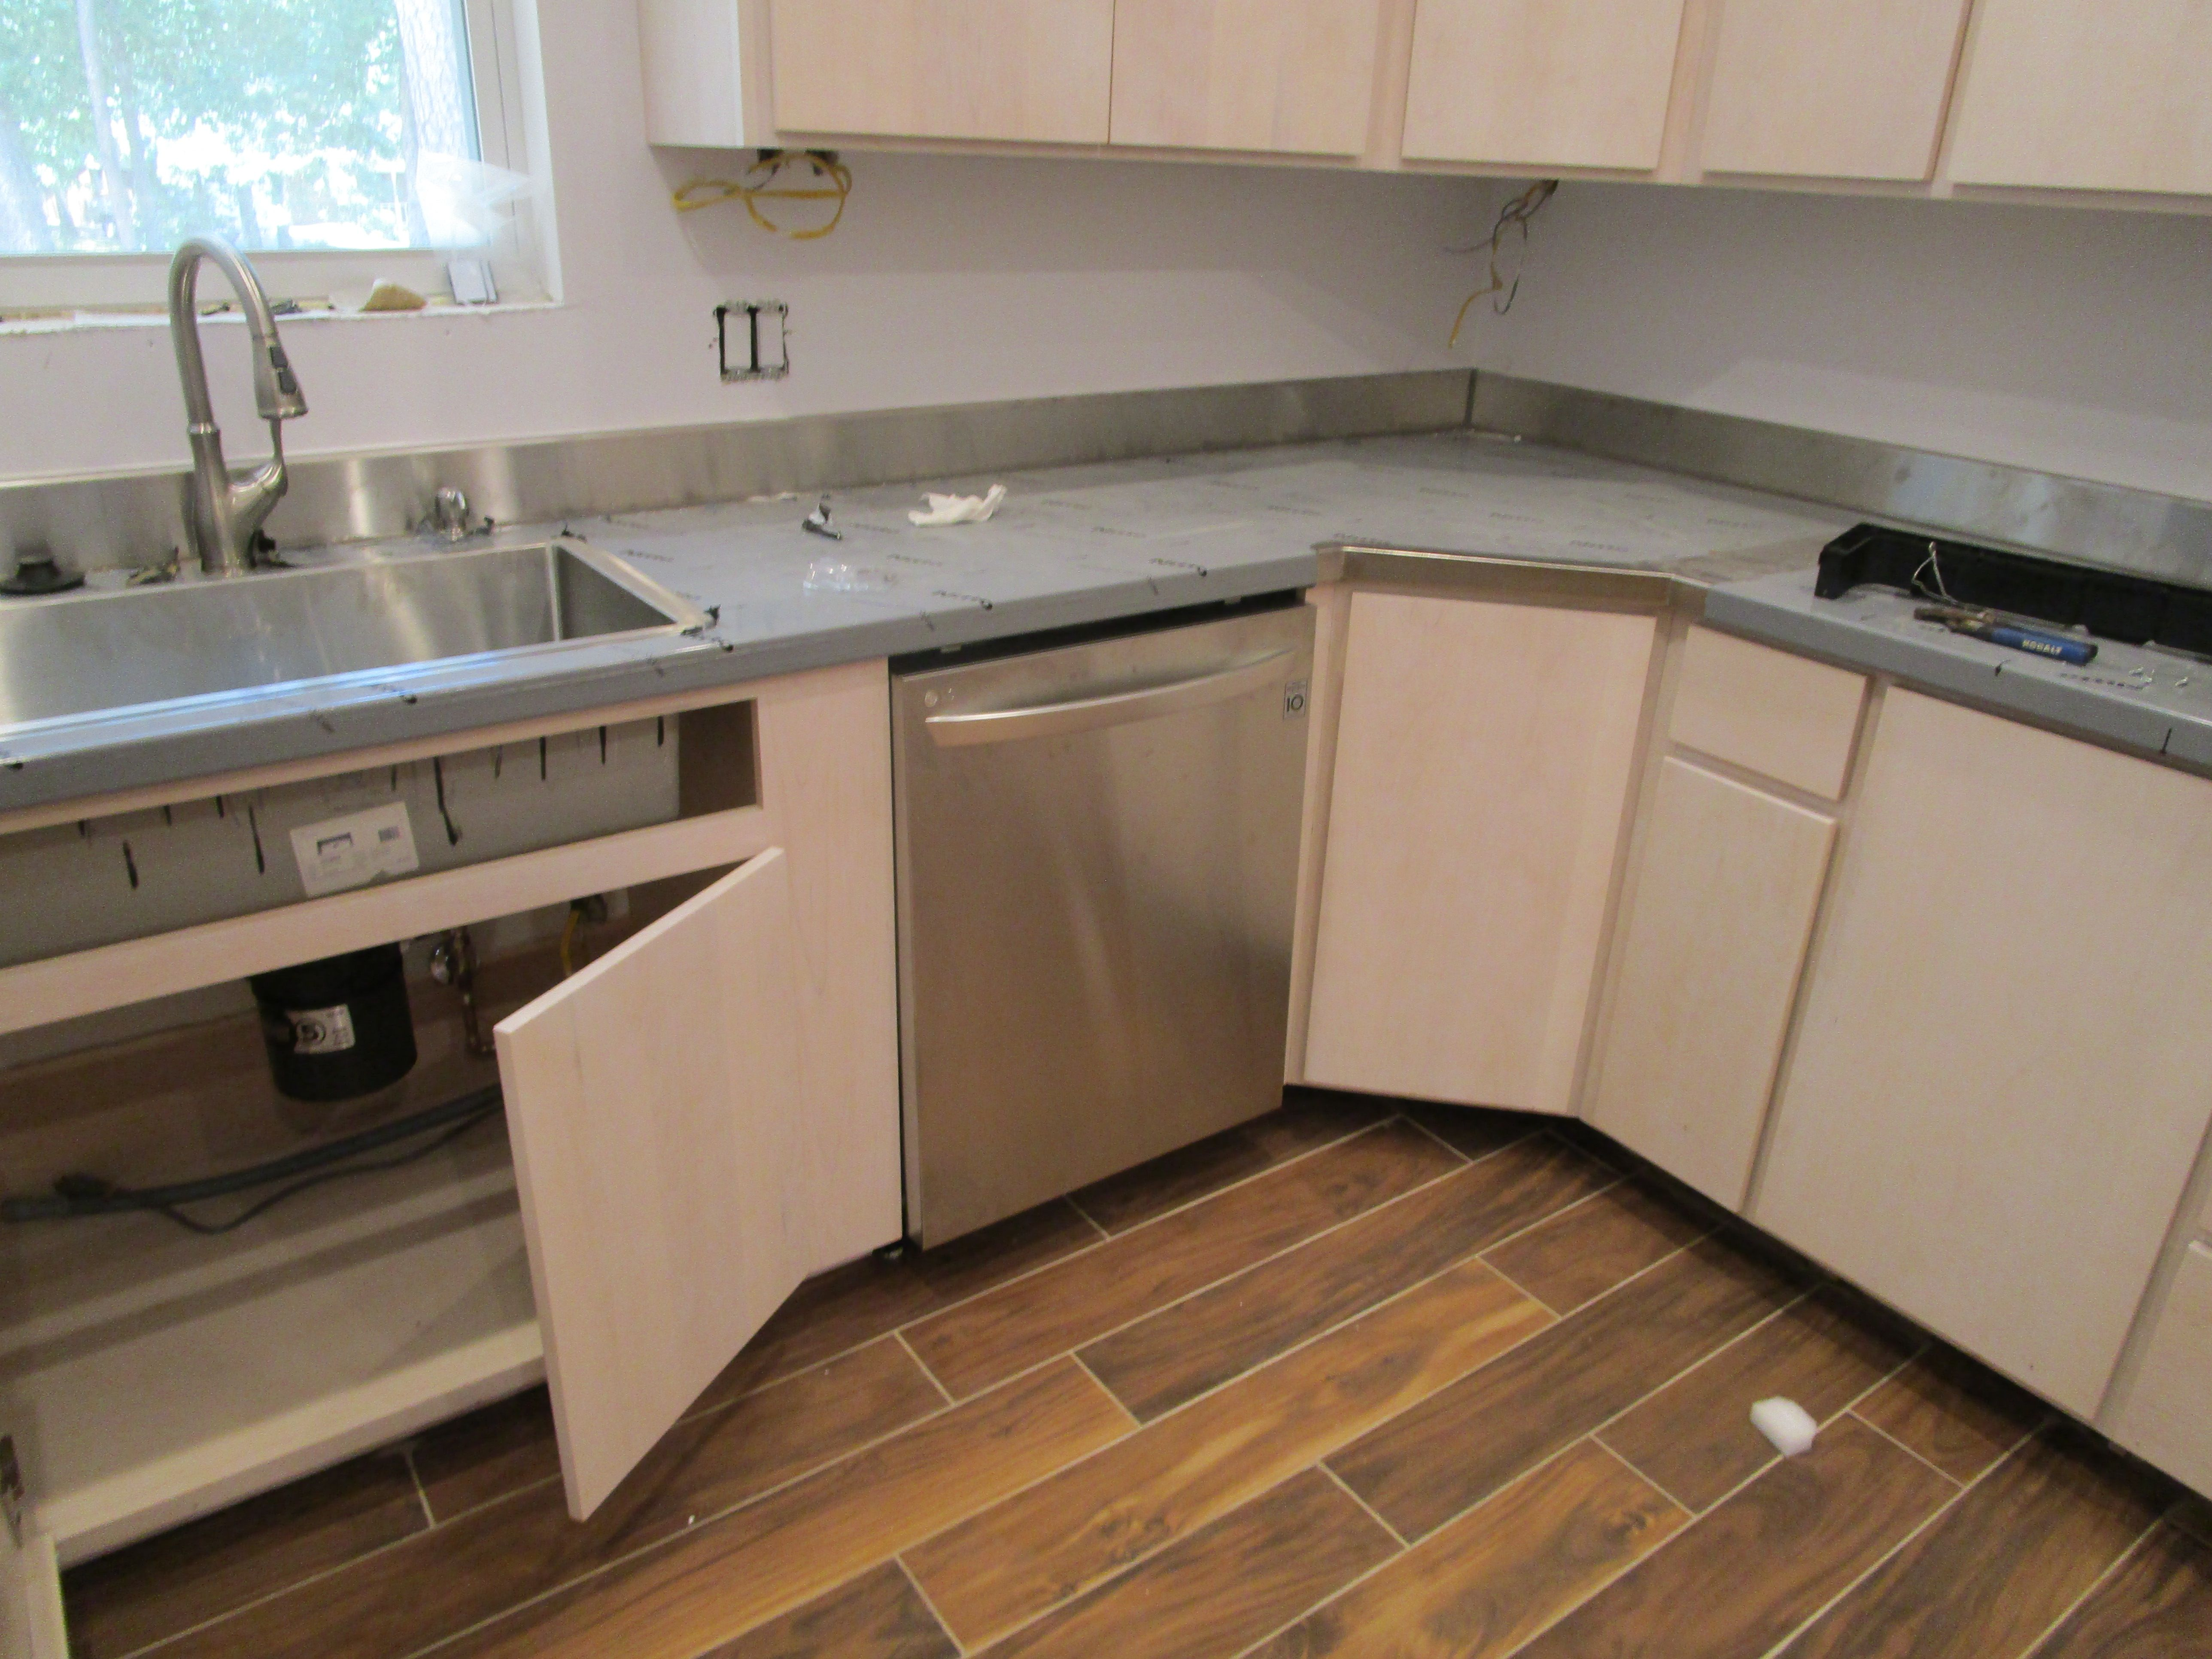 The dishwasher is installed and awaiting the electrician ...